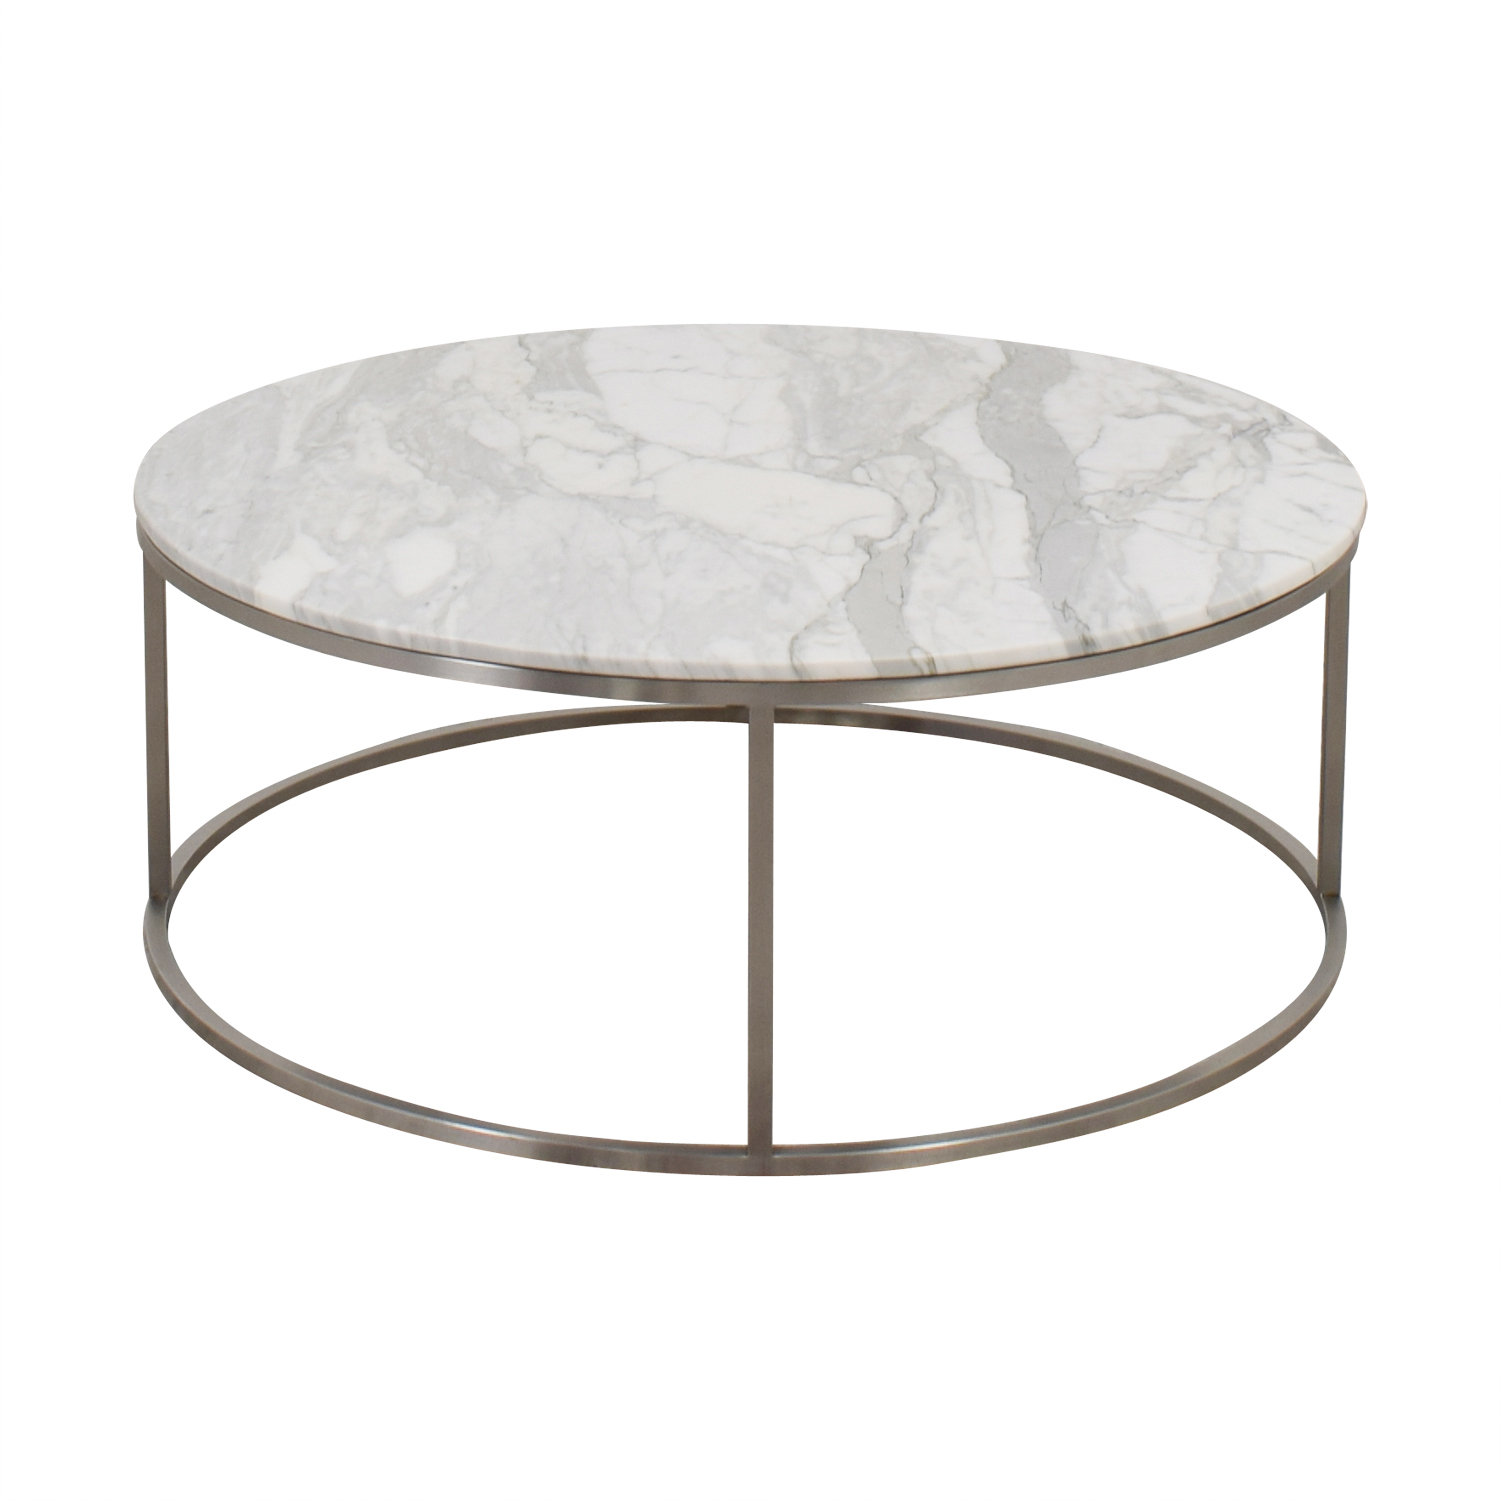 shop Design Within Reach Design Within Reach Marble Round Coffee Table online